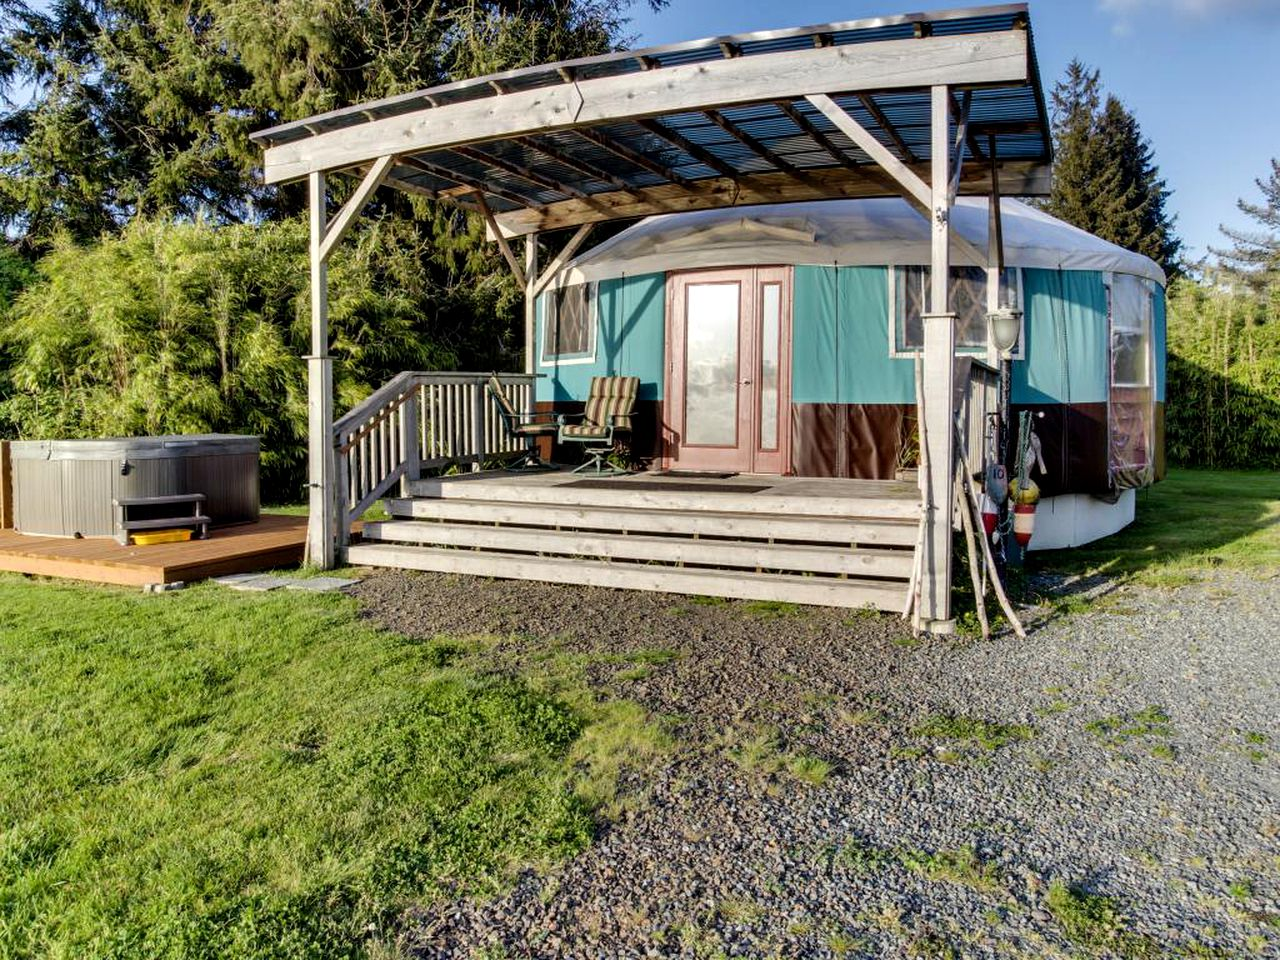 Yurt rental with hot tub and deck in Tillamook, Oregon